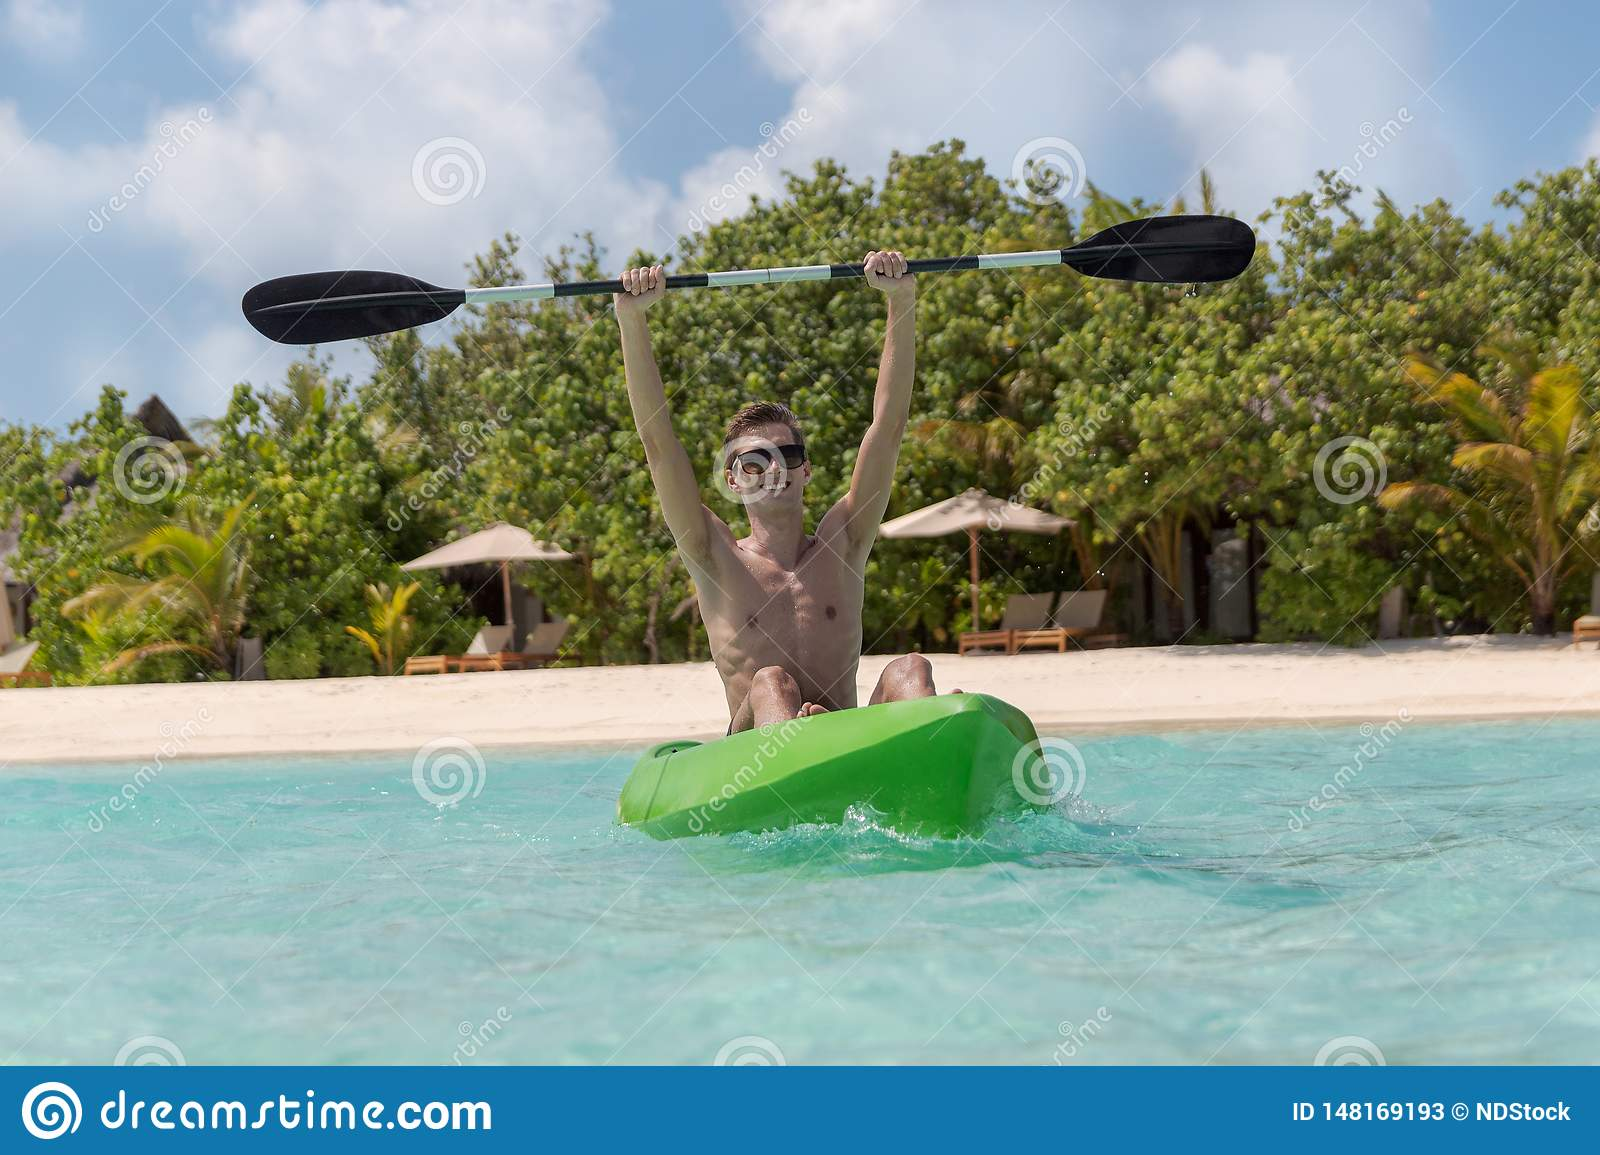 Young happy man with arms raised kayaking on a tropical island in the Maldives. Clear blue water